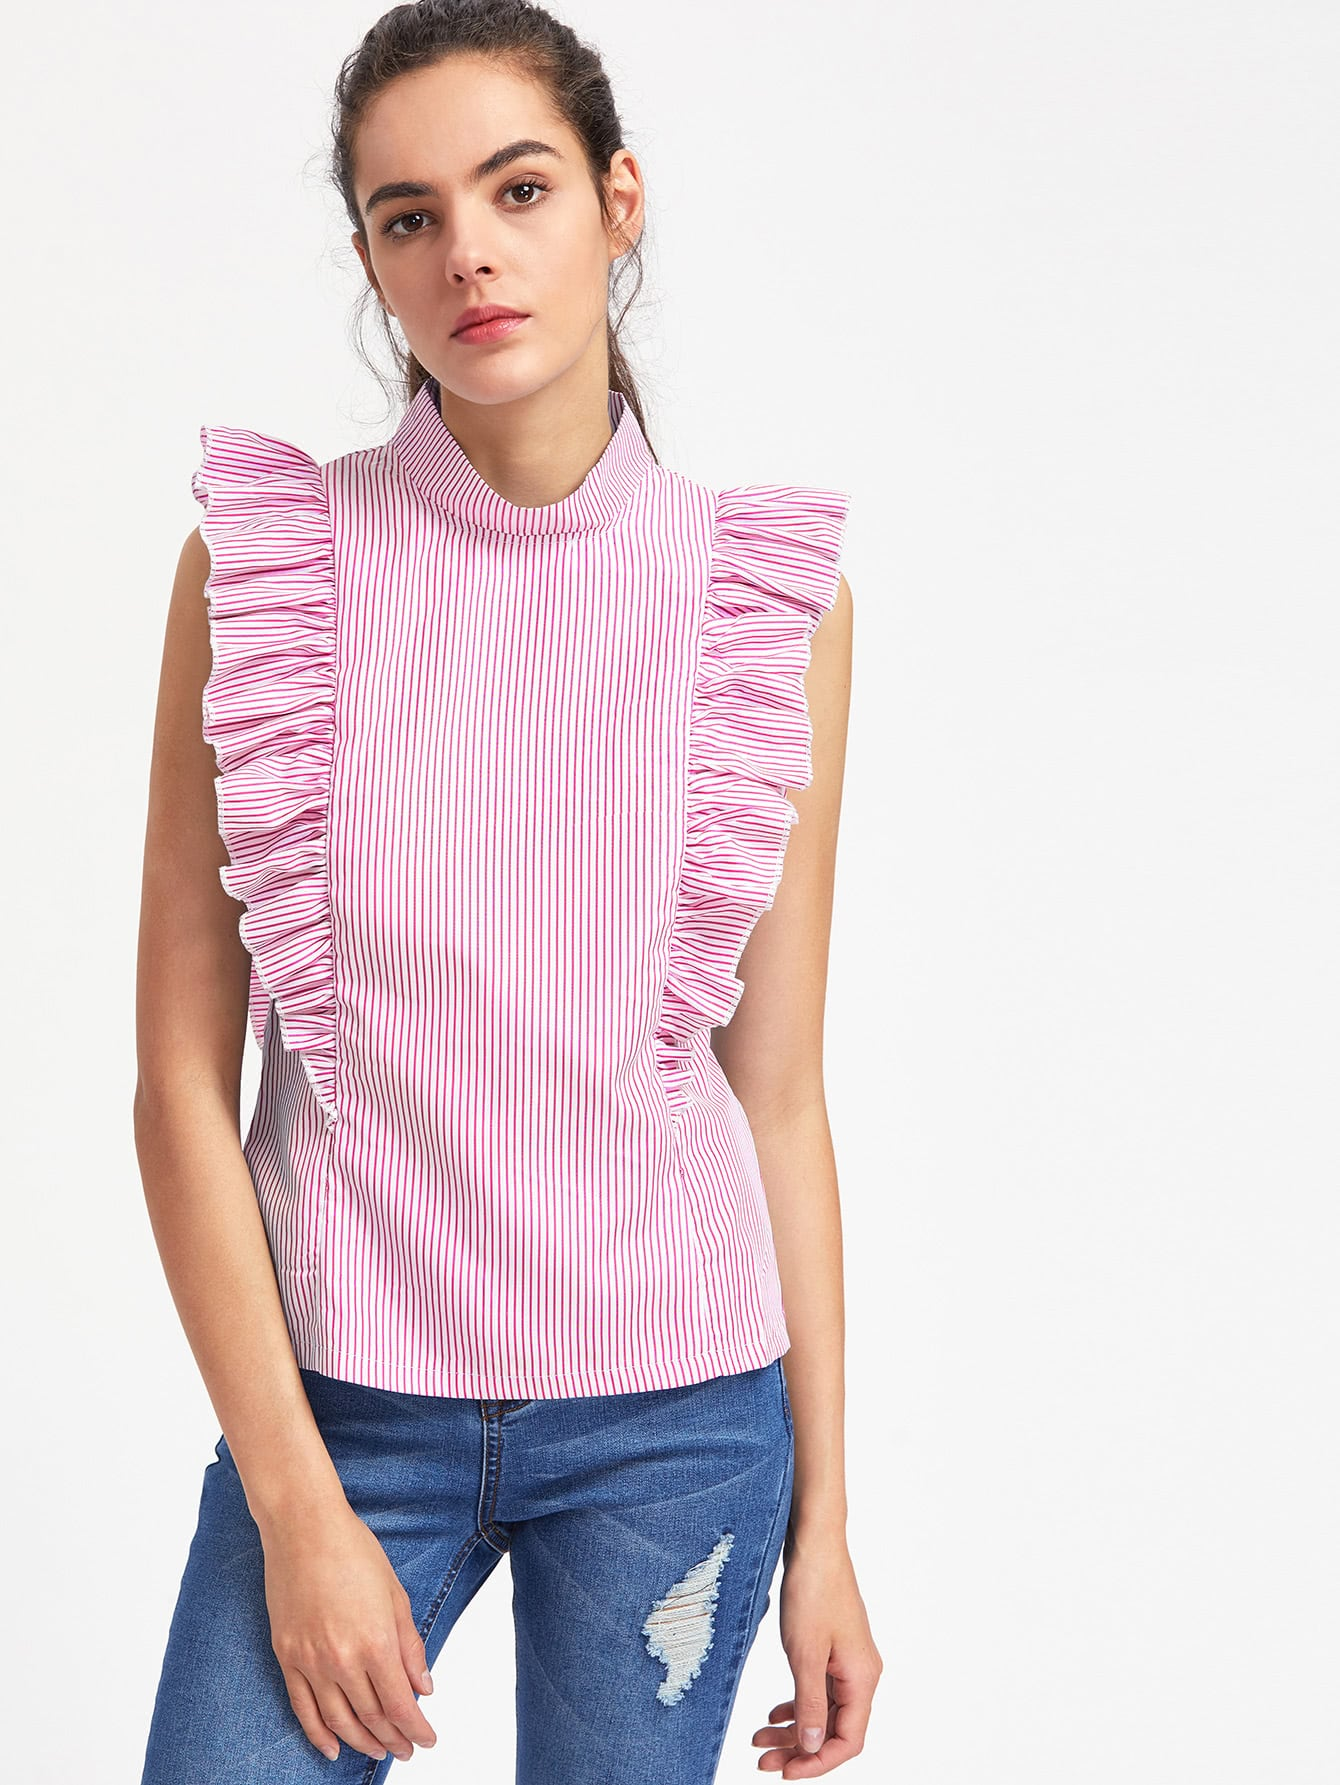 Vertical Striped Exaggerated Frill Trim Top blouse170606102